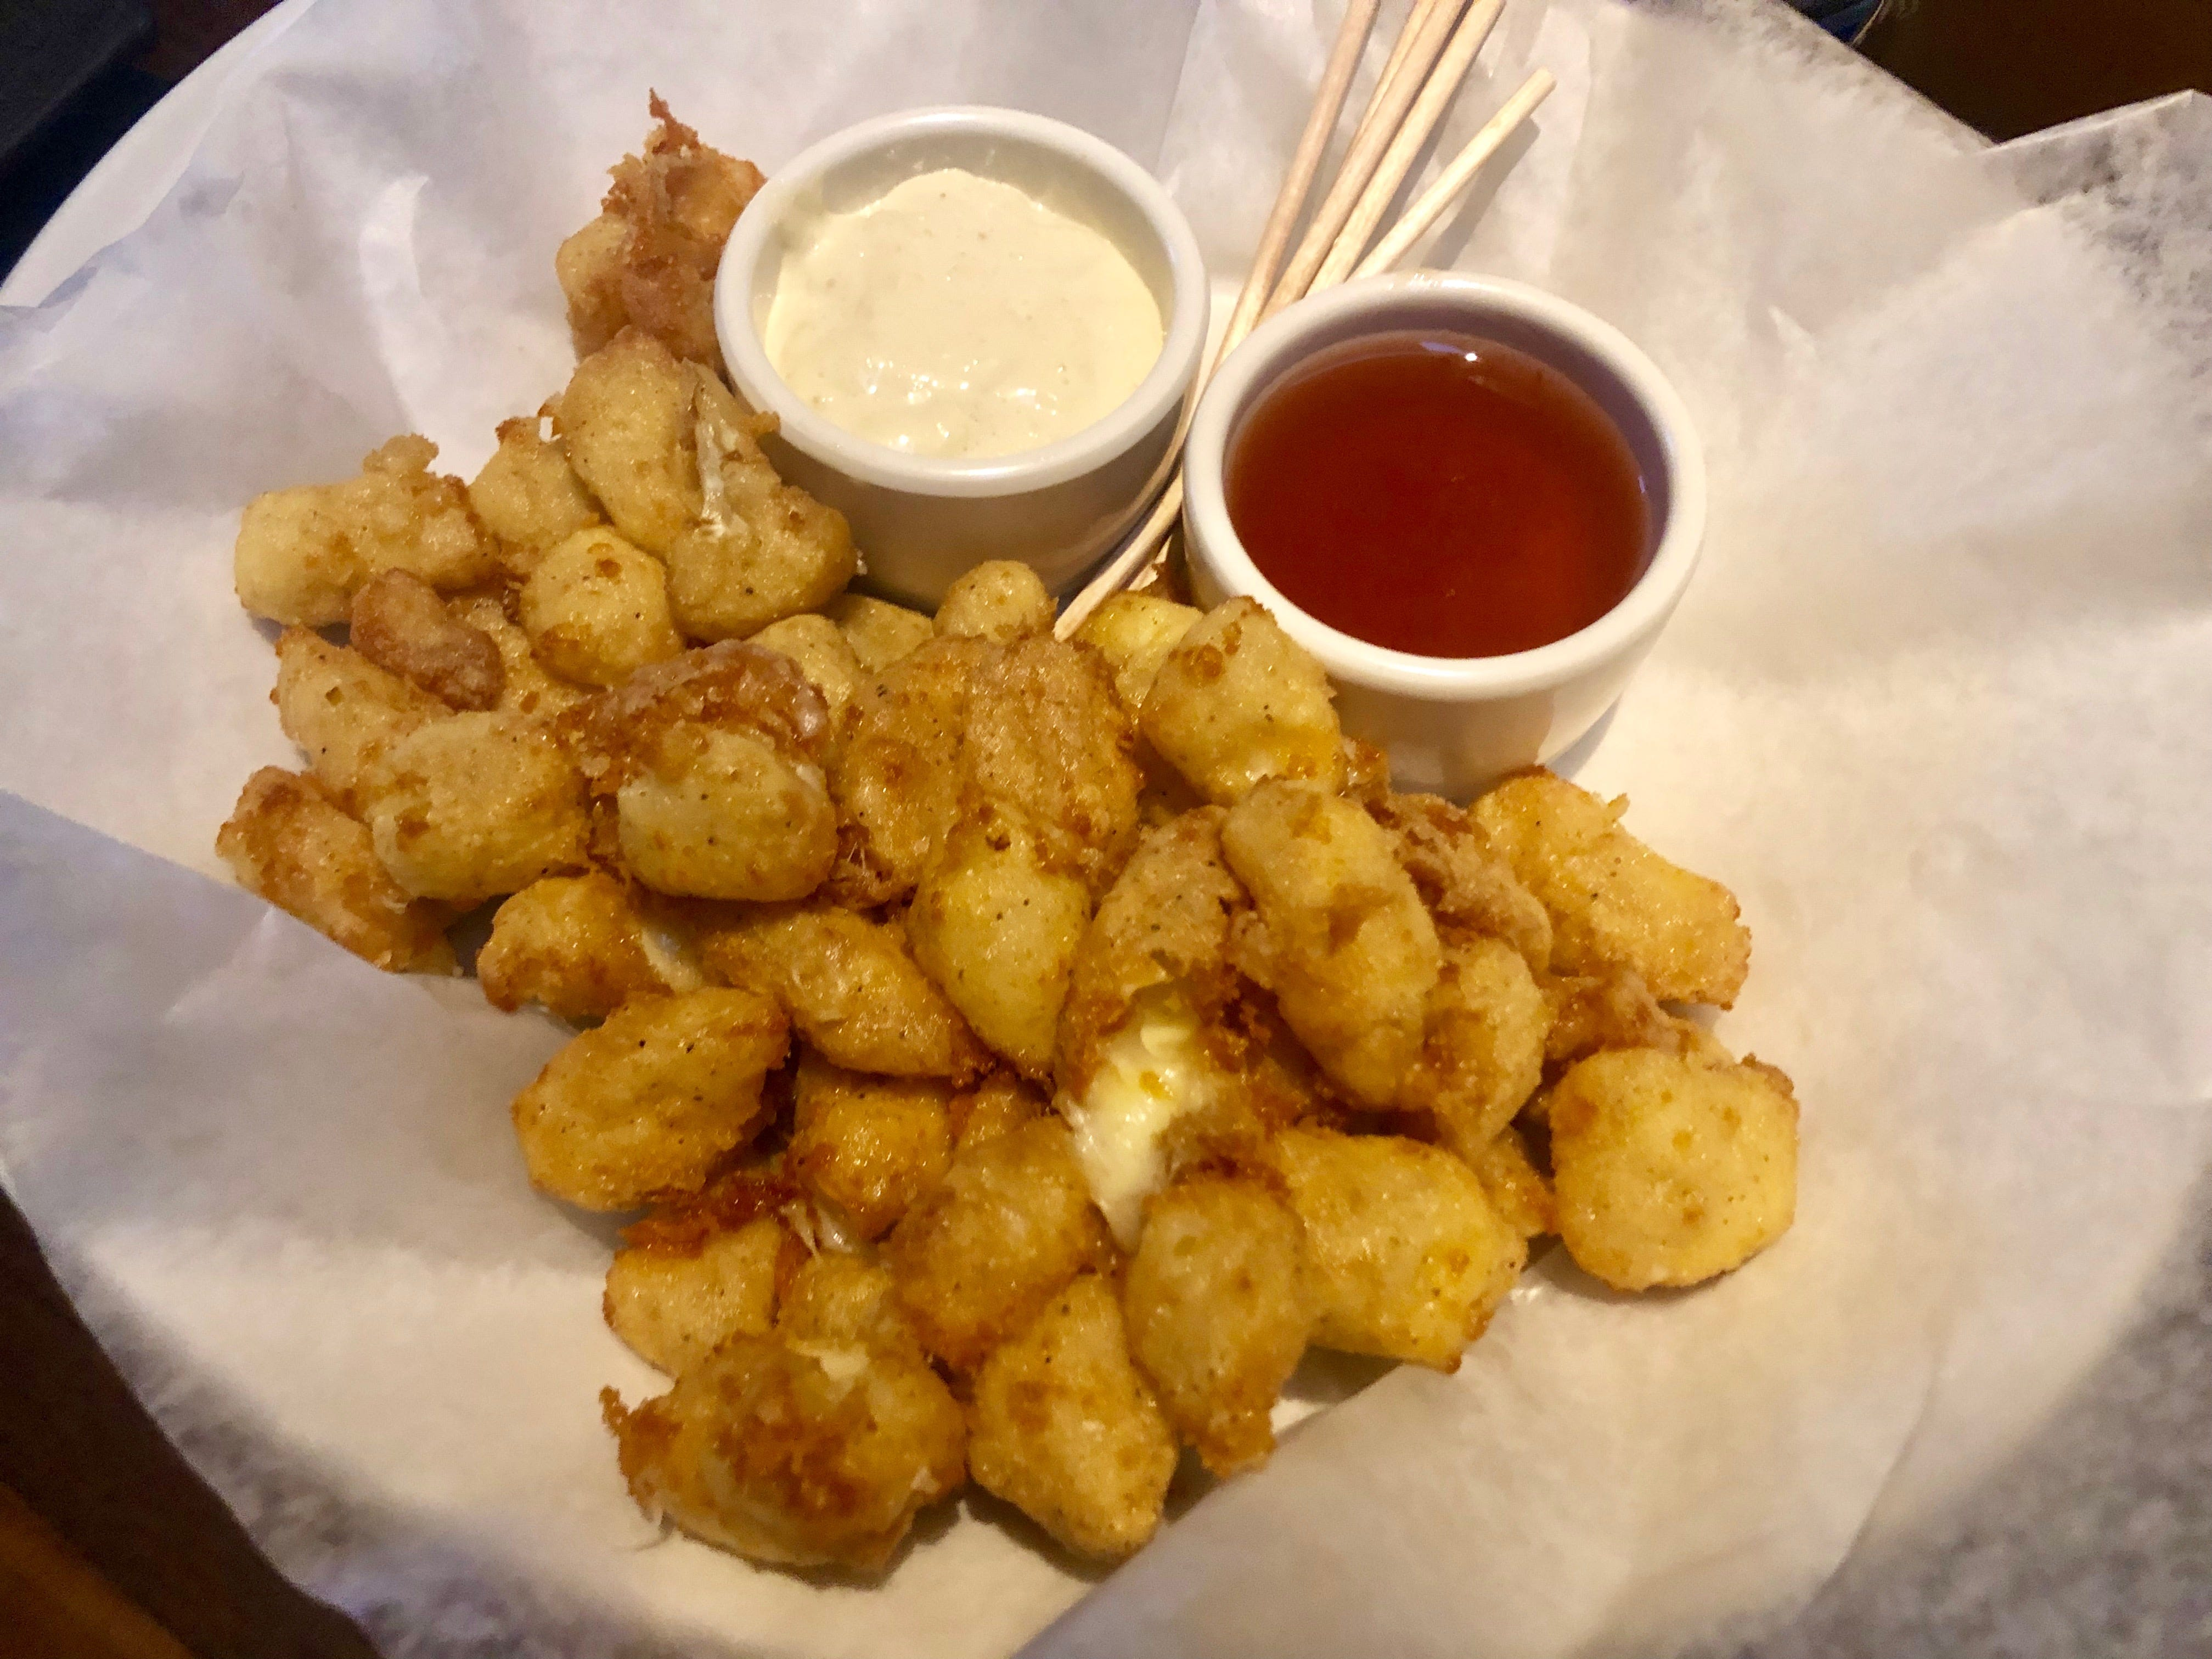 Gobs of fried  Wisconsin cheese curds come with honey hot sauce and horseradish aioli for dipping.